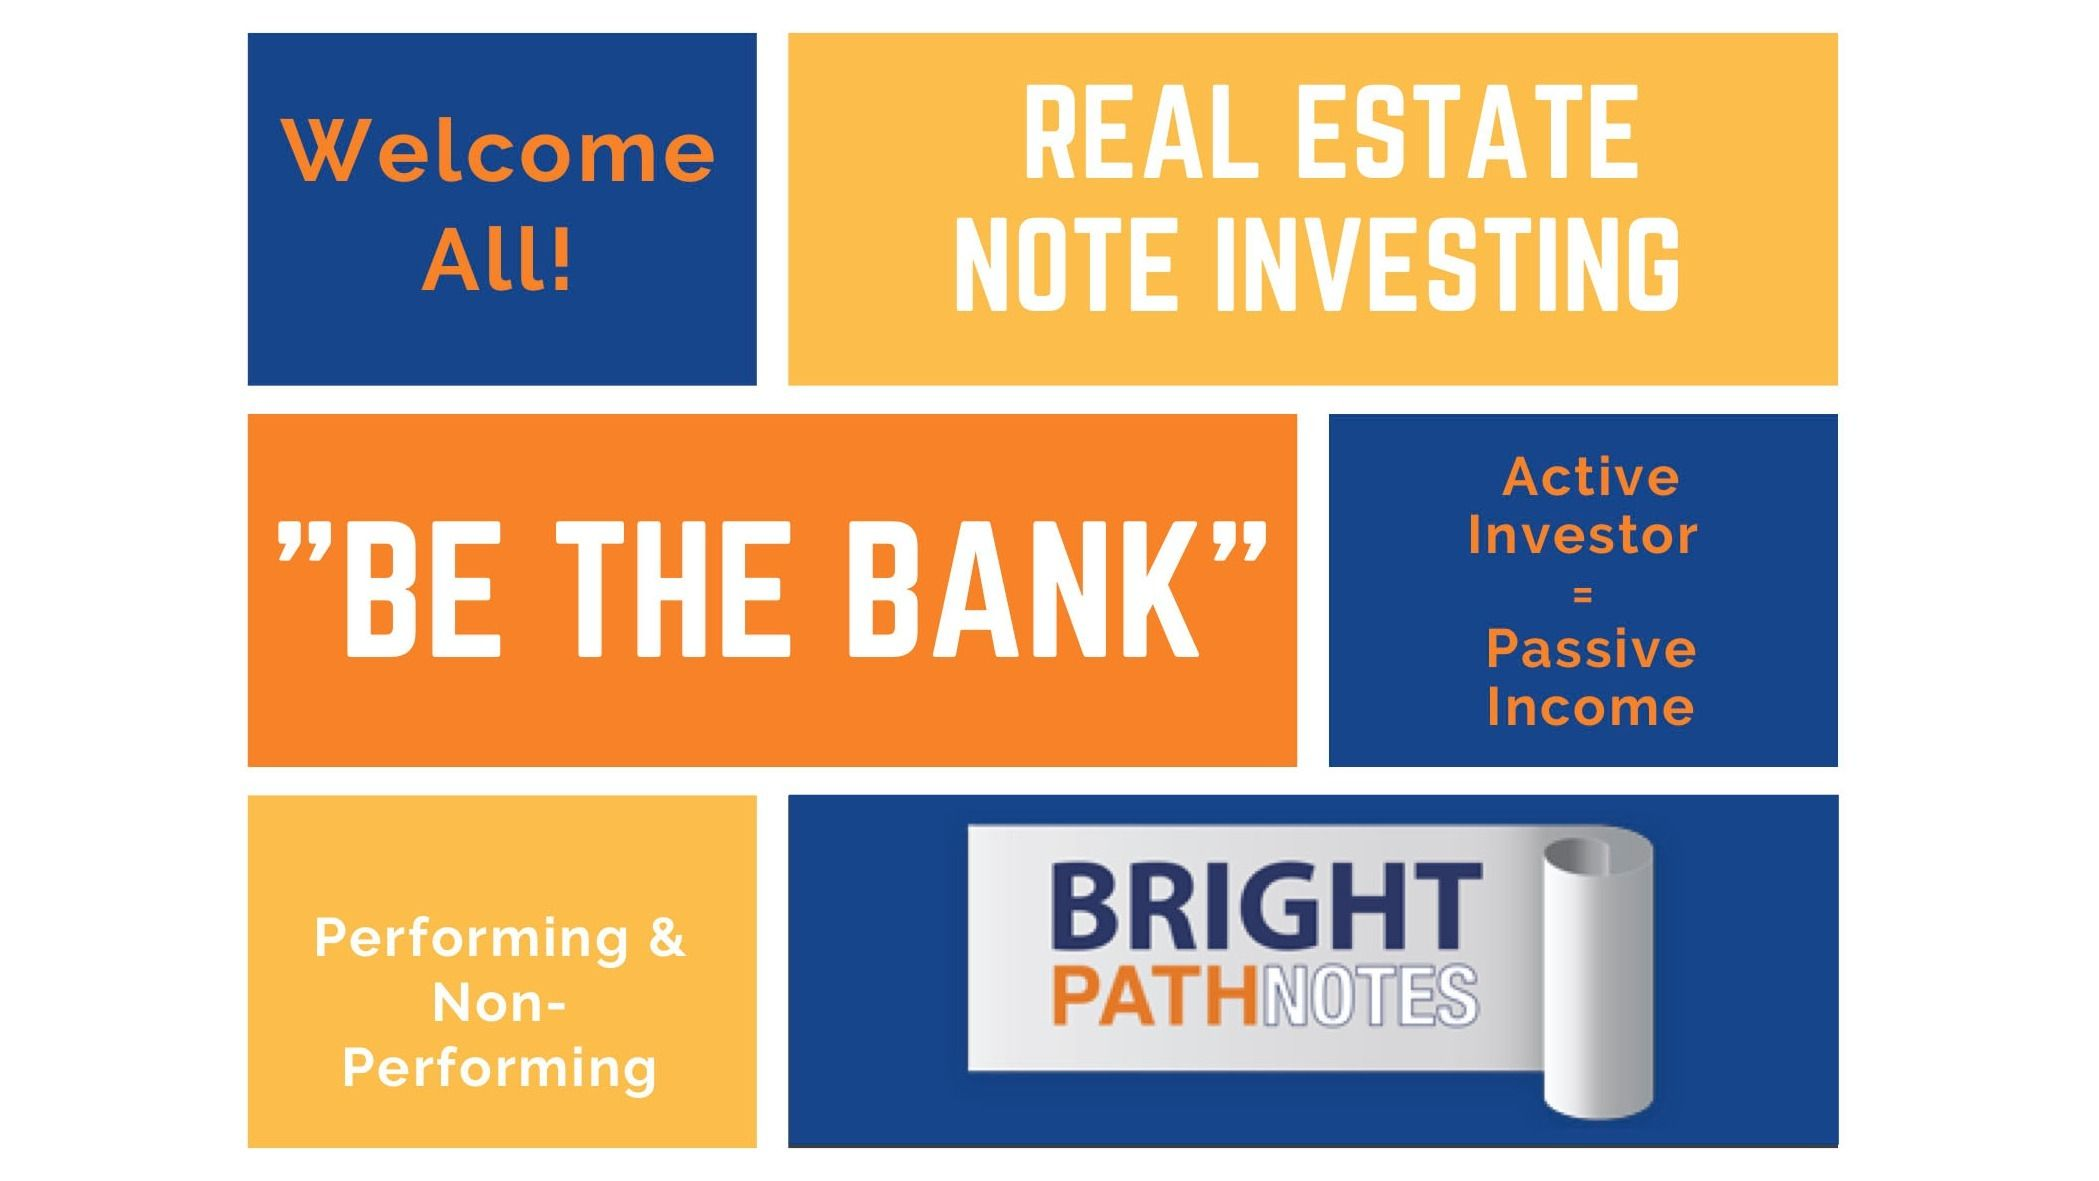 """Real Estate Note Investing - """"Be the Bank"""""""